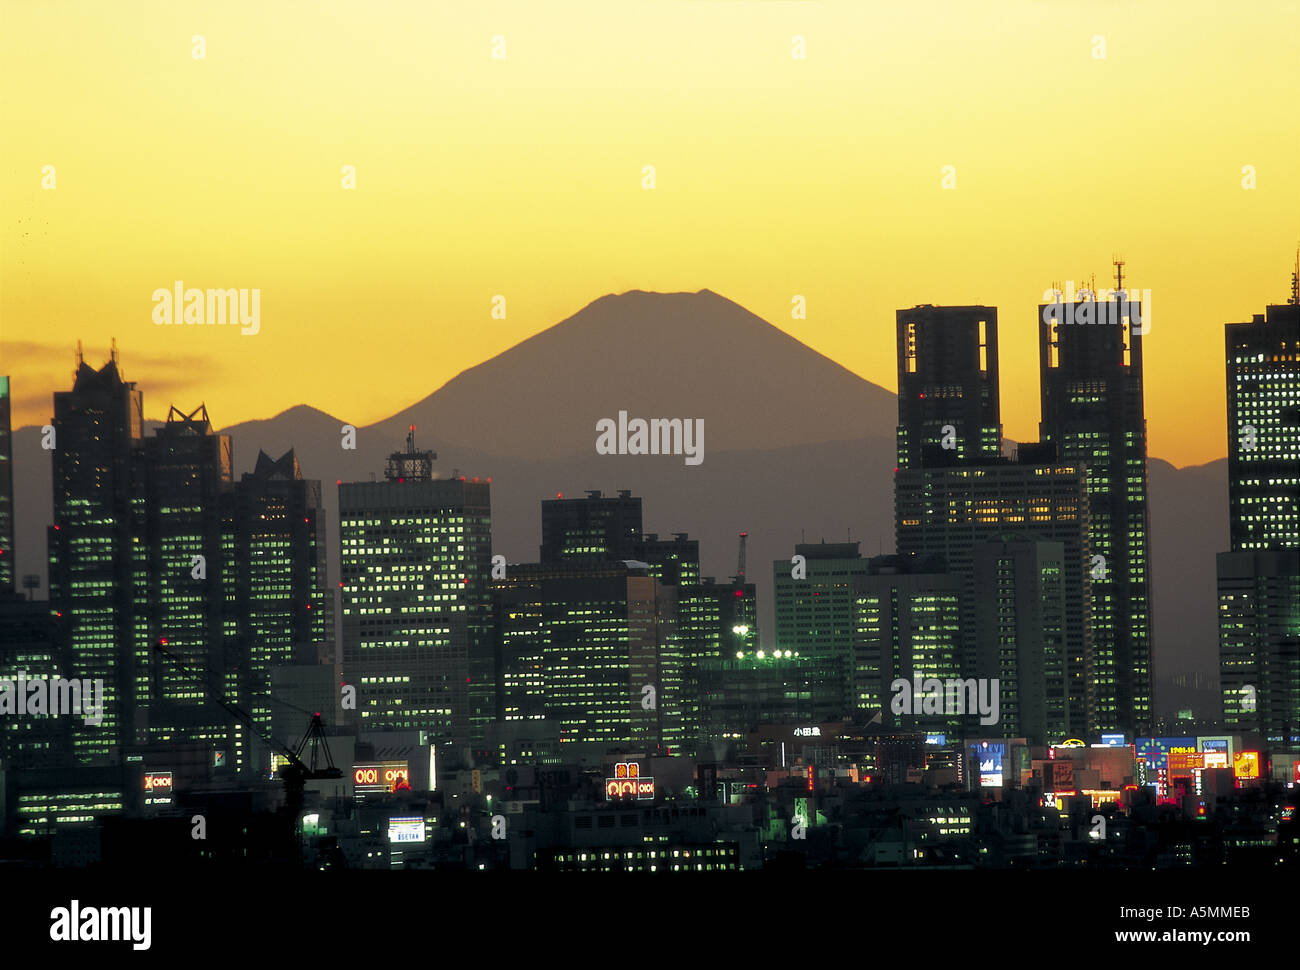 Mt Fuji and skyscrapers of Shinjuku district Tokyo Japan - Stock Image